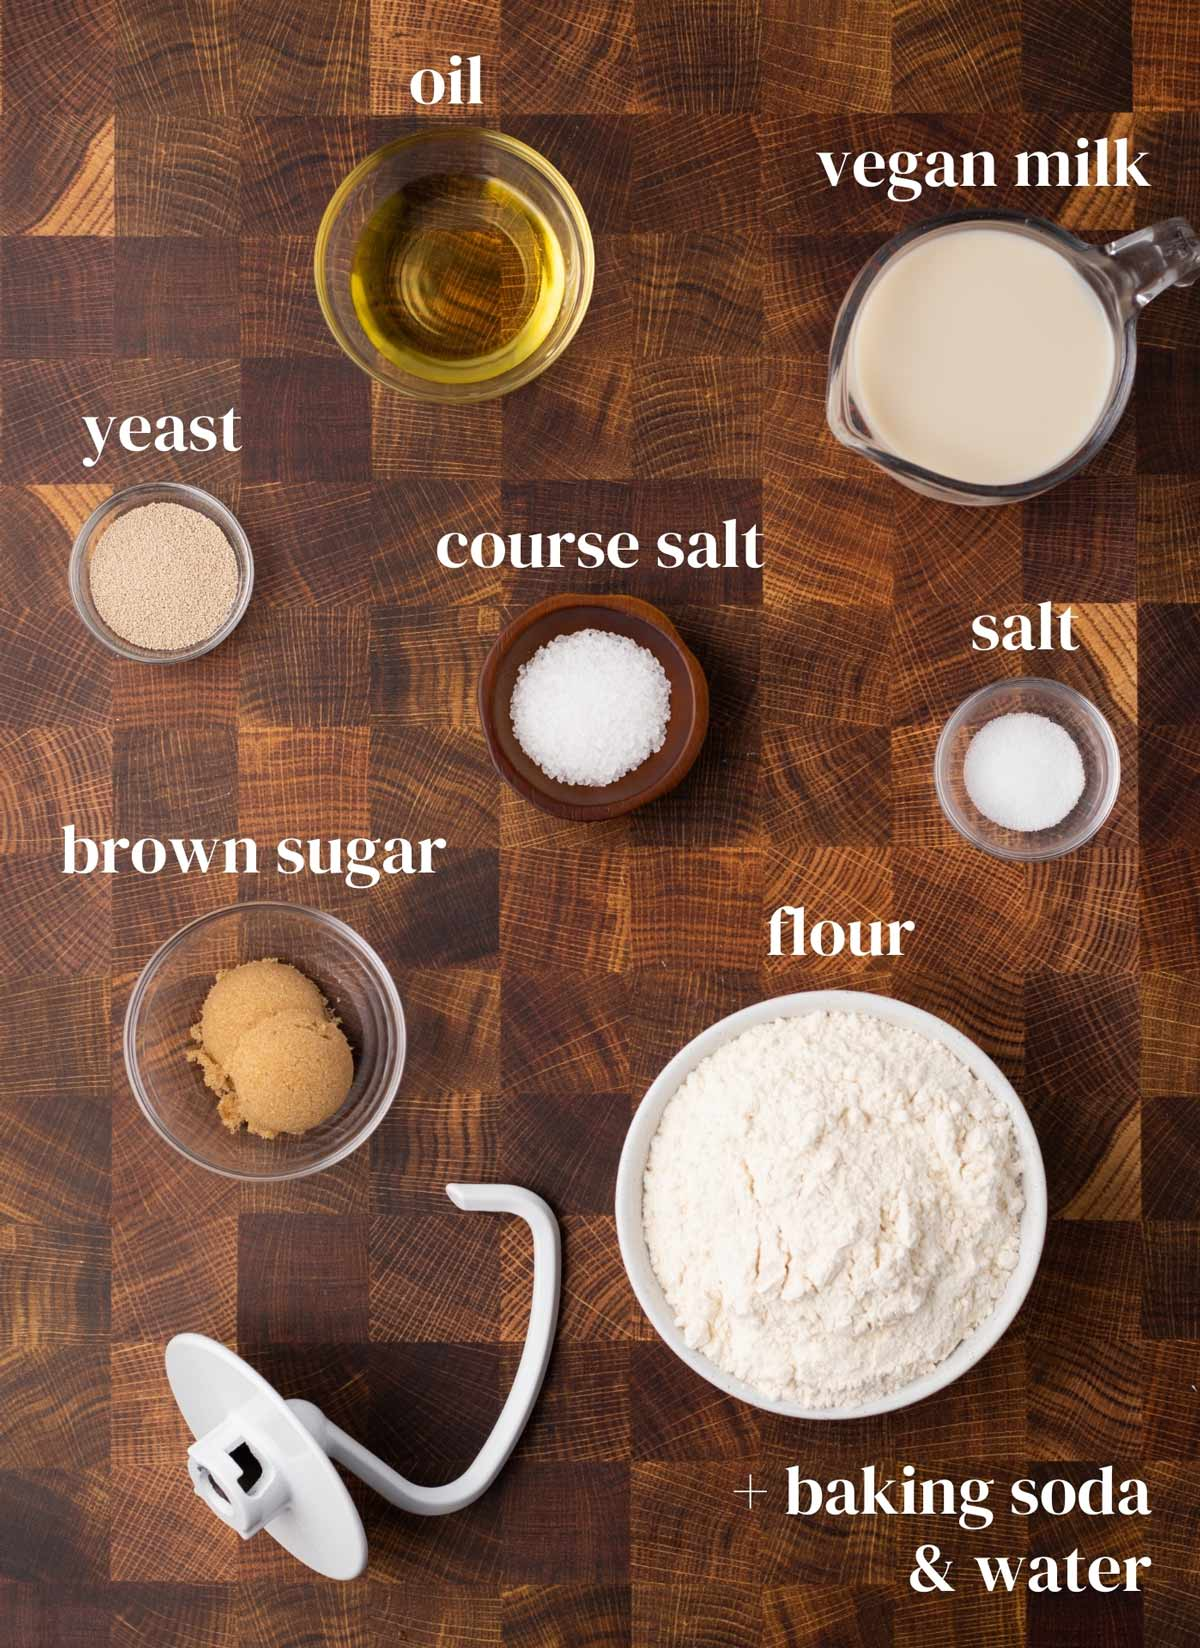 Ingredients for this recipe laid out on a surface.